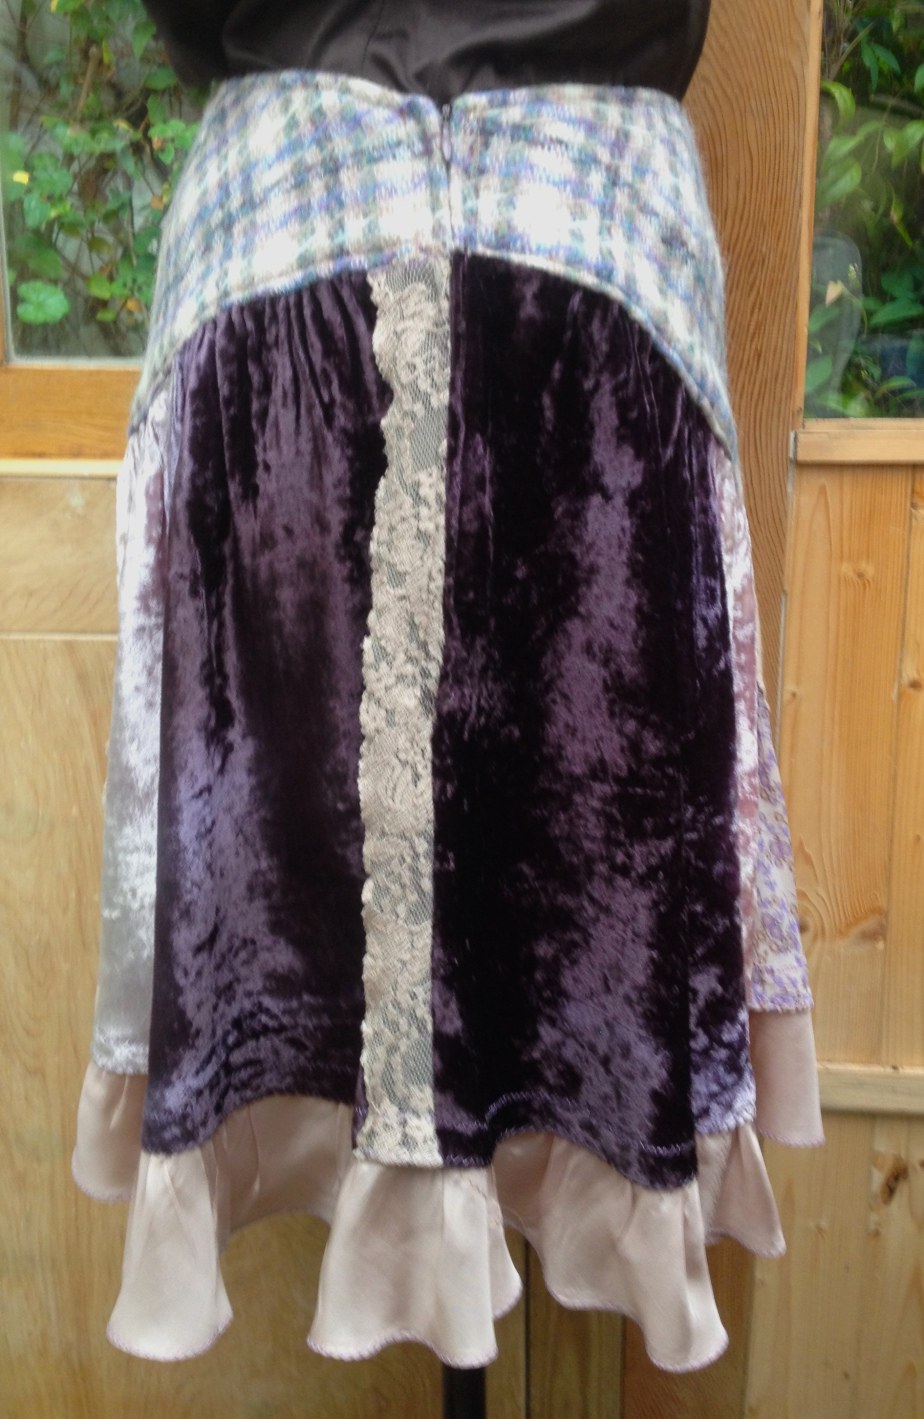 Plum velvet skirt 2 side zip lace - edited .JPG